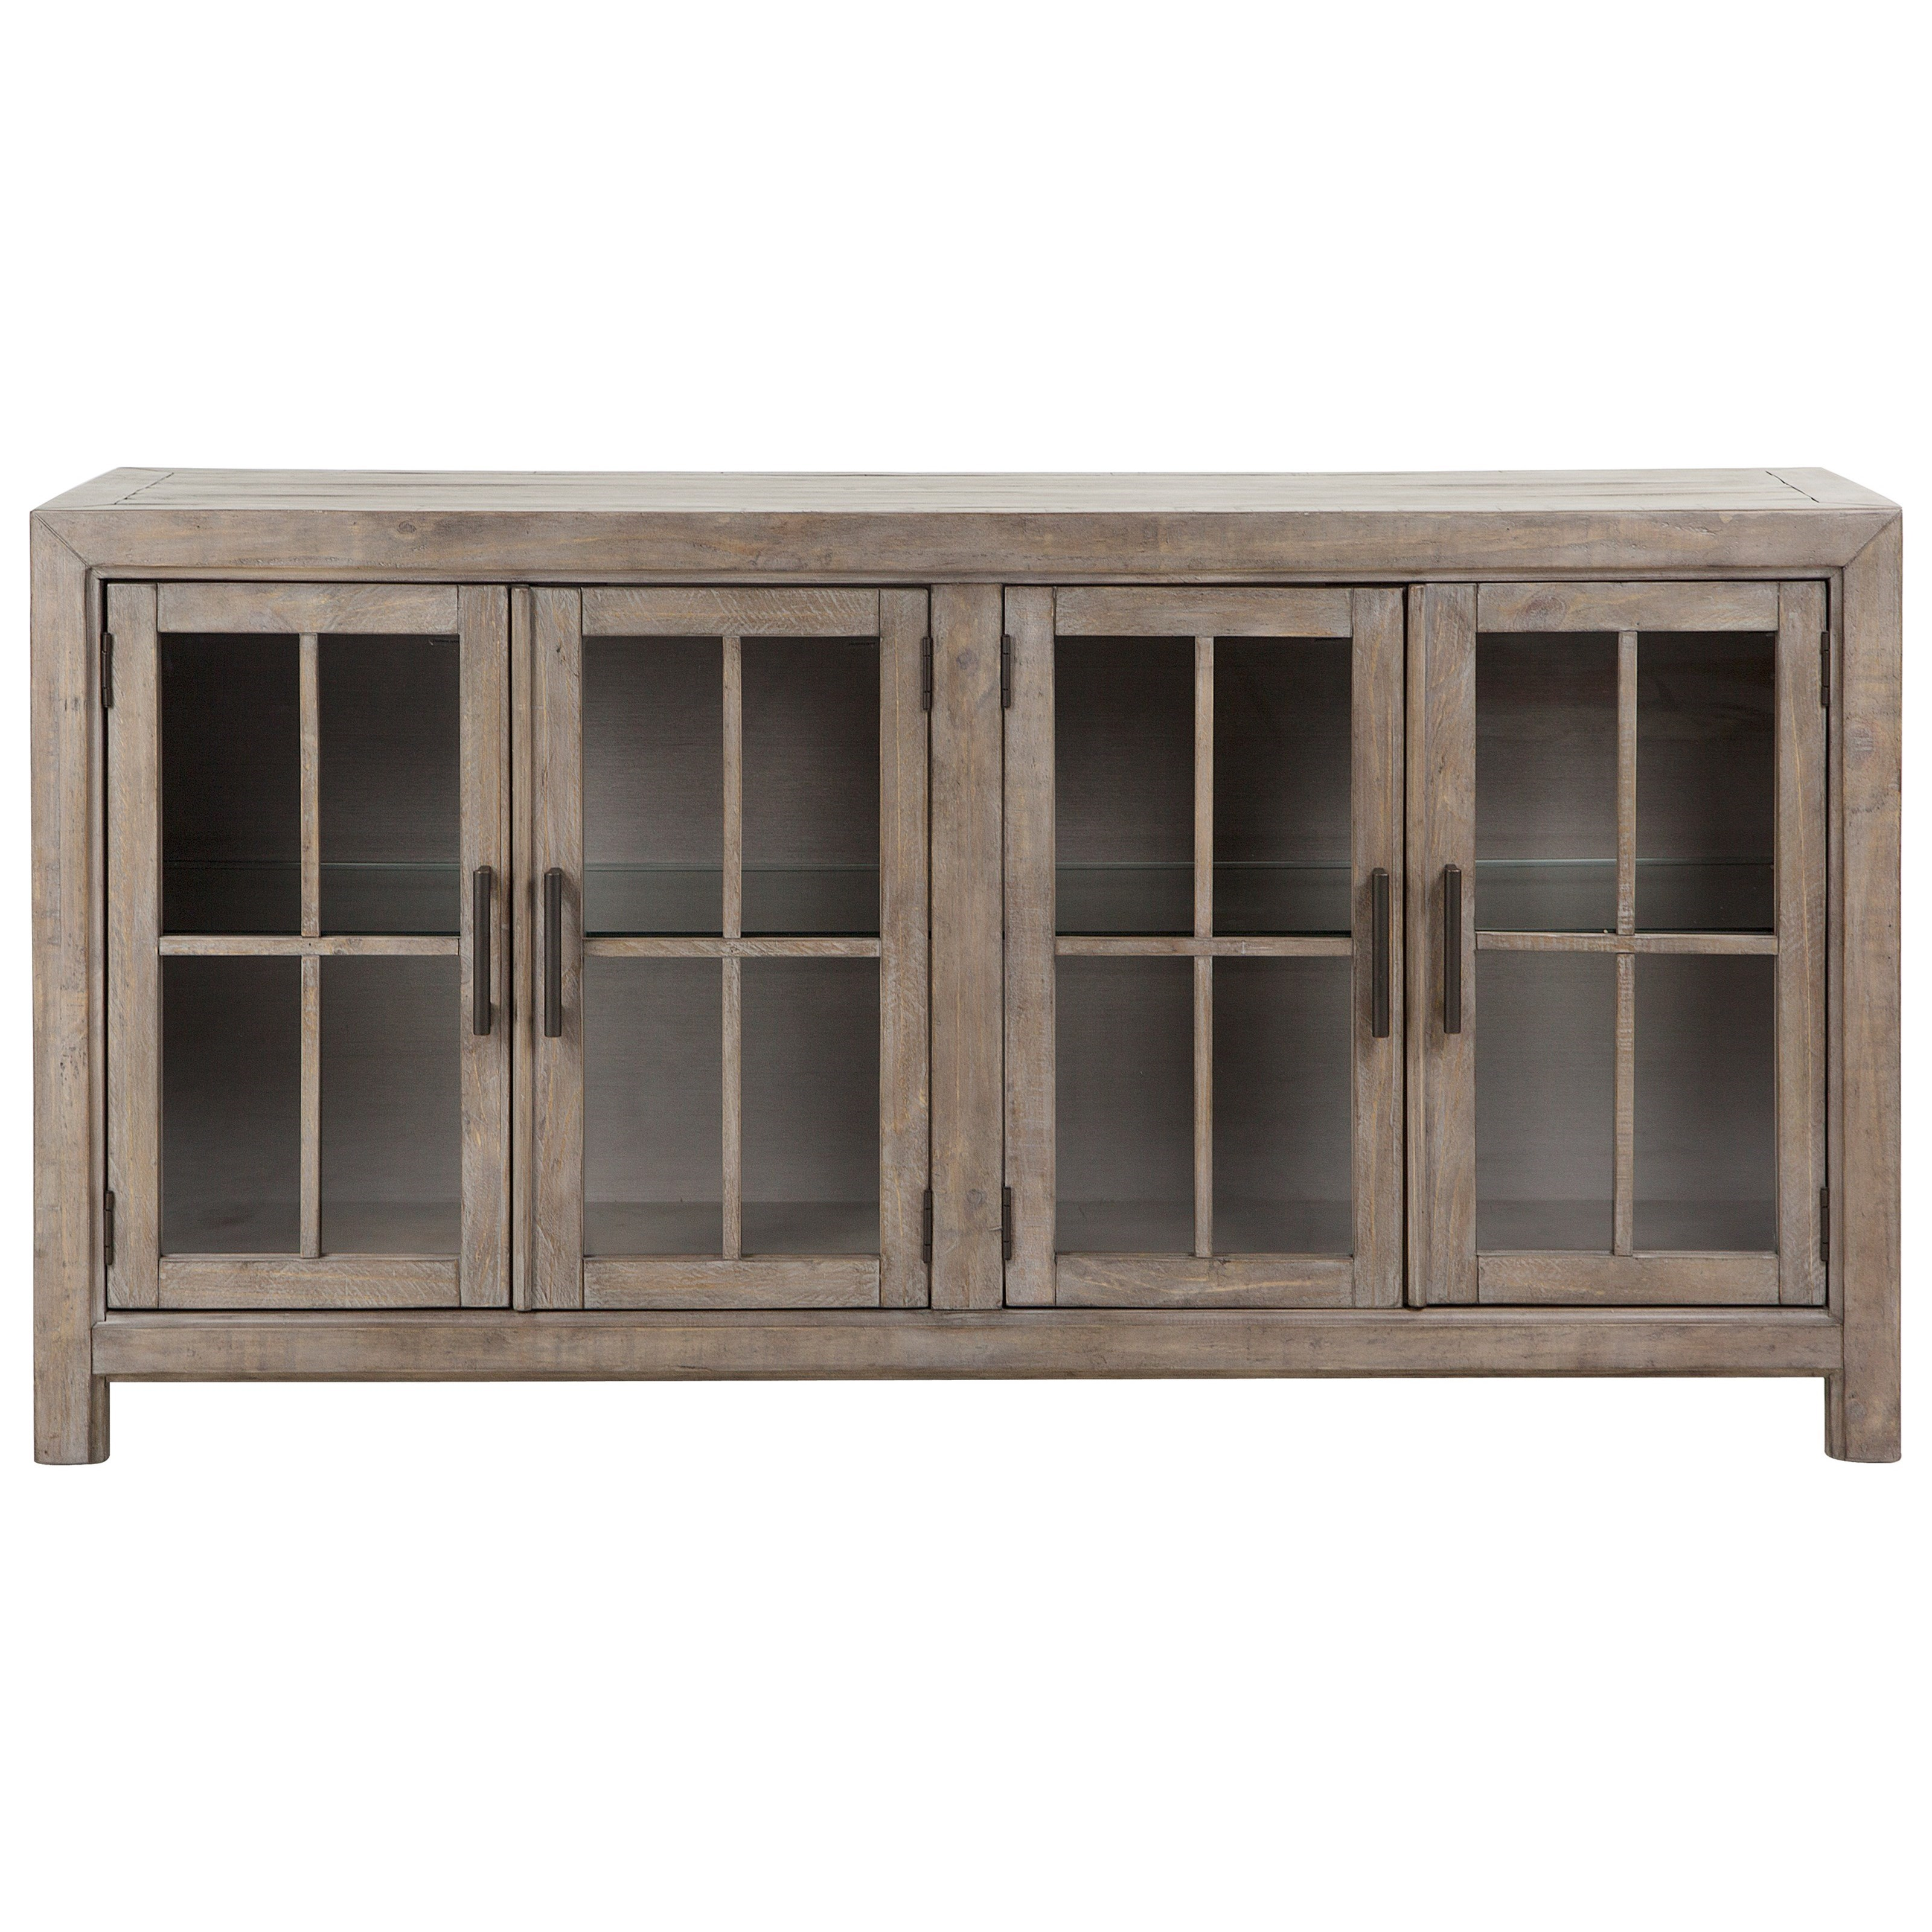 Tinley Park Buffet Curio Cabinet by Magnussen Home at Suburban Furniture